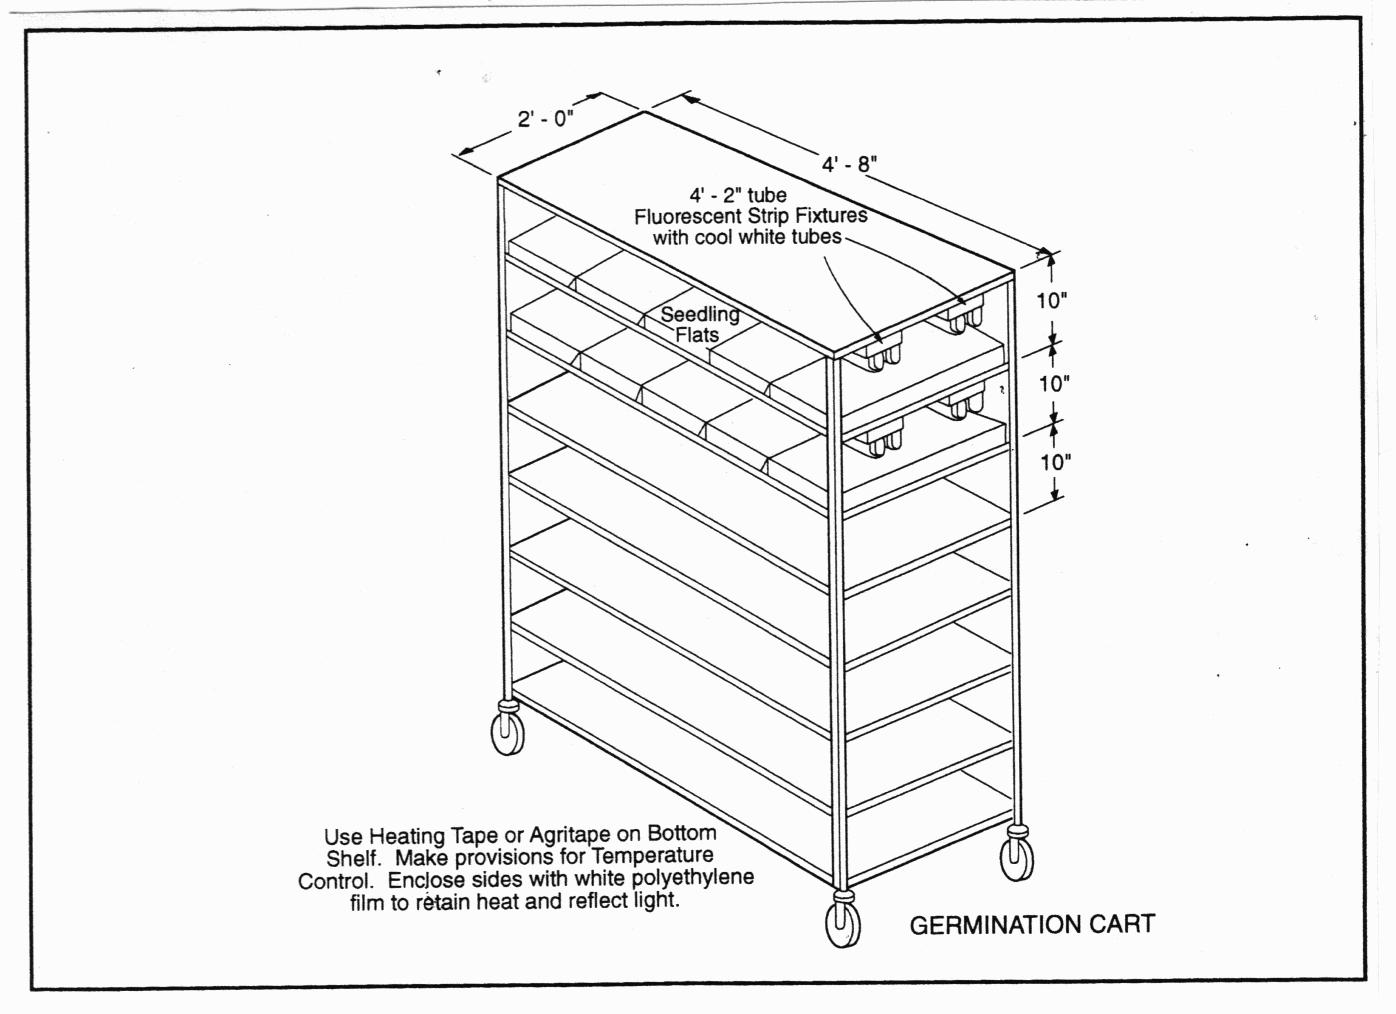 Greenhouse Floriculture Germination Chamber Growth Room For Plants With Names In Addition Diagram Of Dual Kitchen Sink Drain Figure 1 Cart Seedling Production